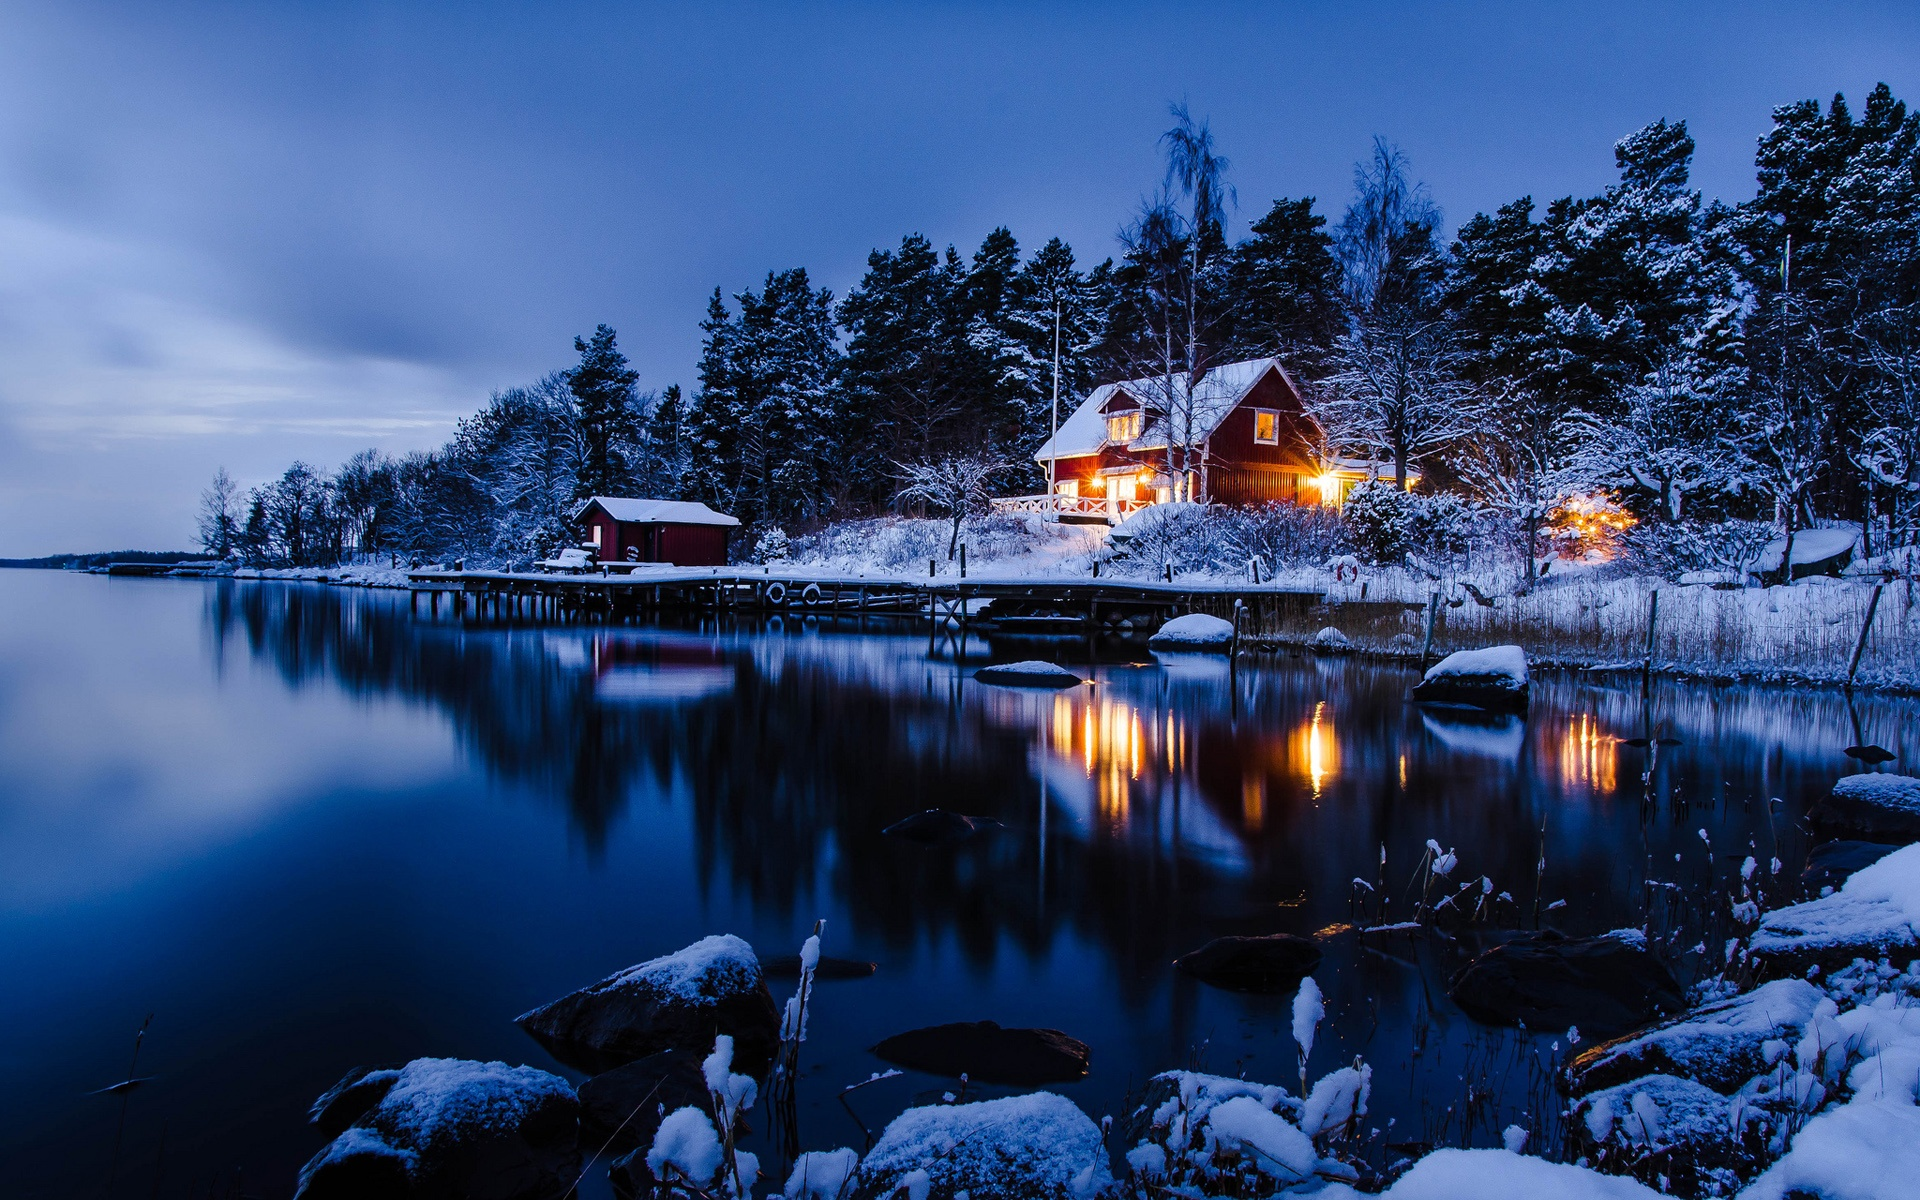 Sweden-winter-landscape-of-snow-houses-lake-woods-blue-style_1920x1200